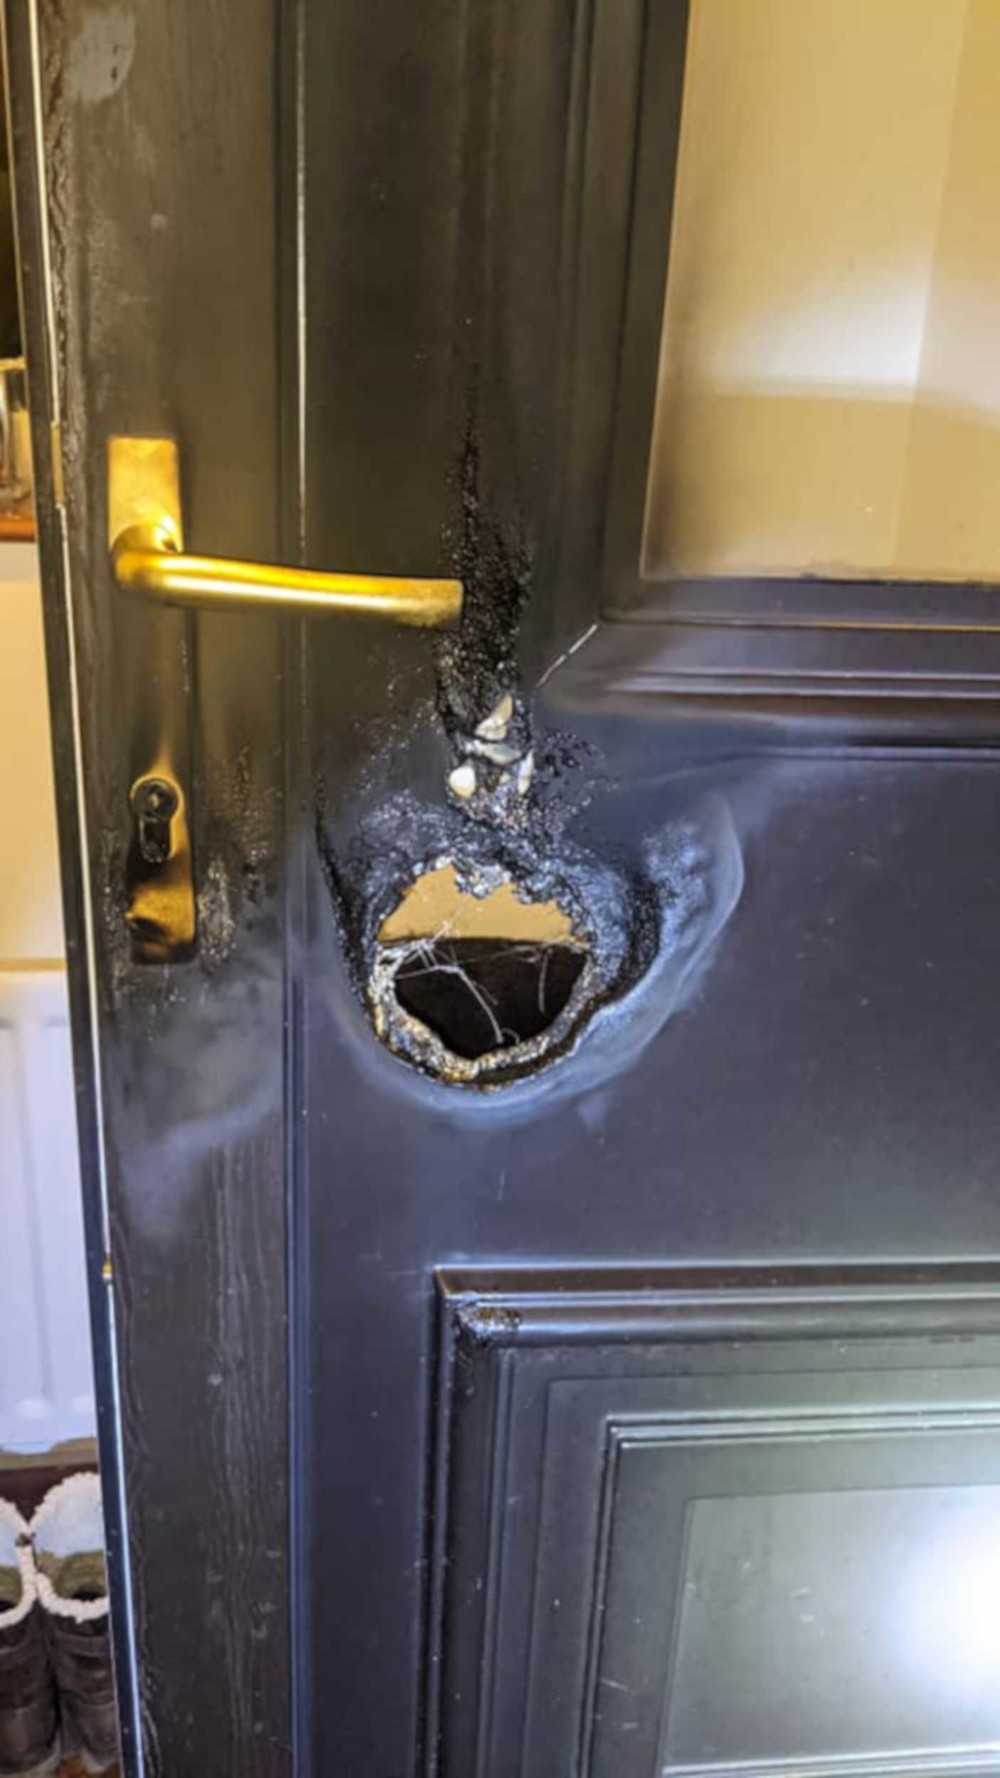 Two men used a blowtorch to break into a house and stole three valuable vehicles - Crime News UK